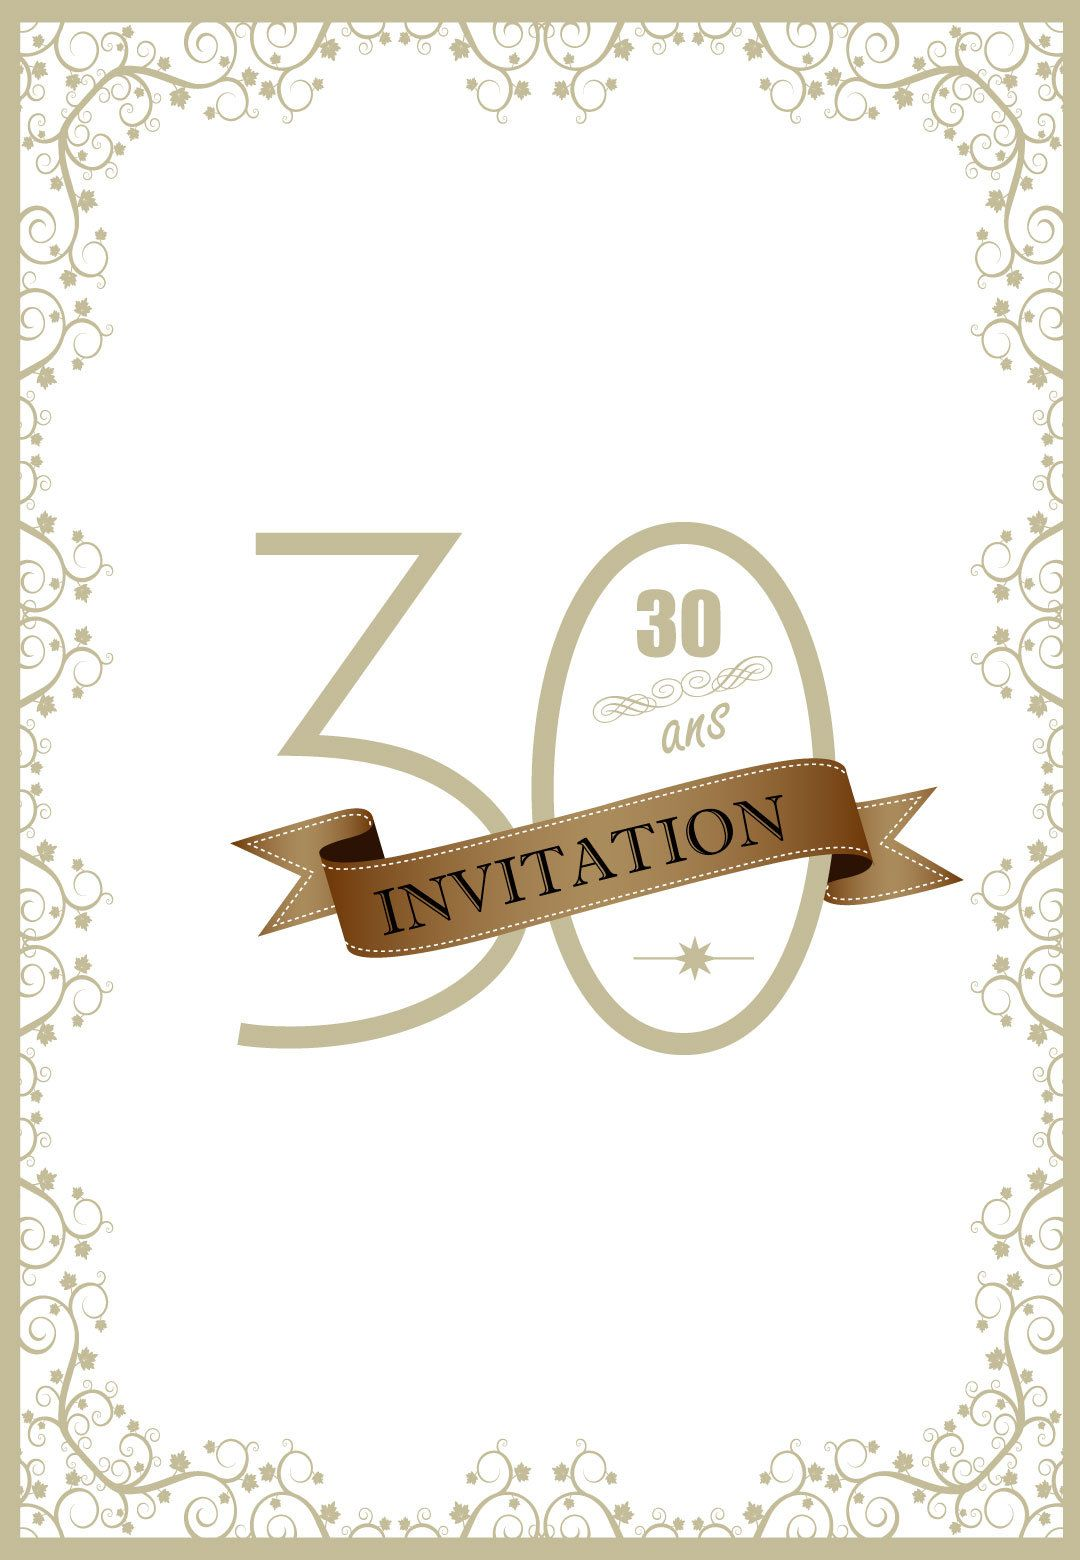 invitation anniversaire 30 ans style retro 123cartes. Black Bedroom Furniture Sets. Home Design Ideas